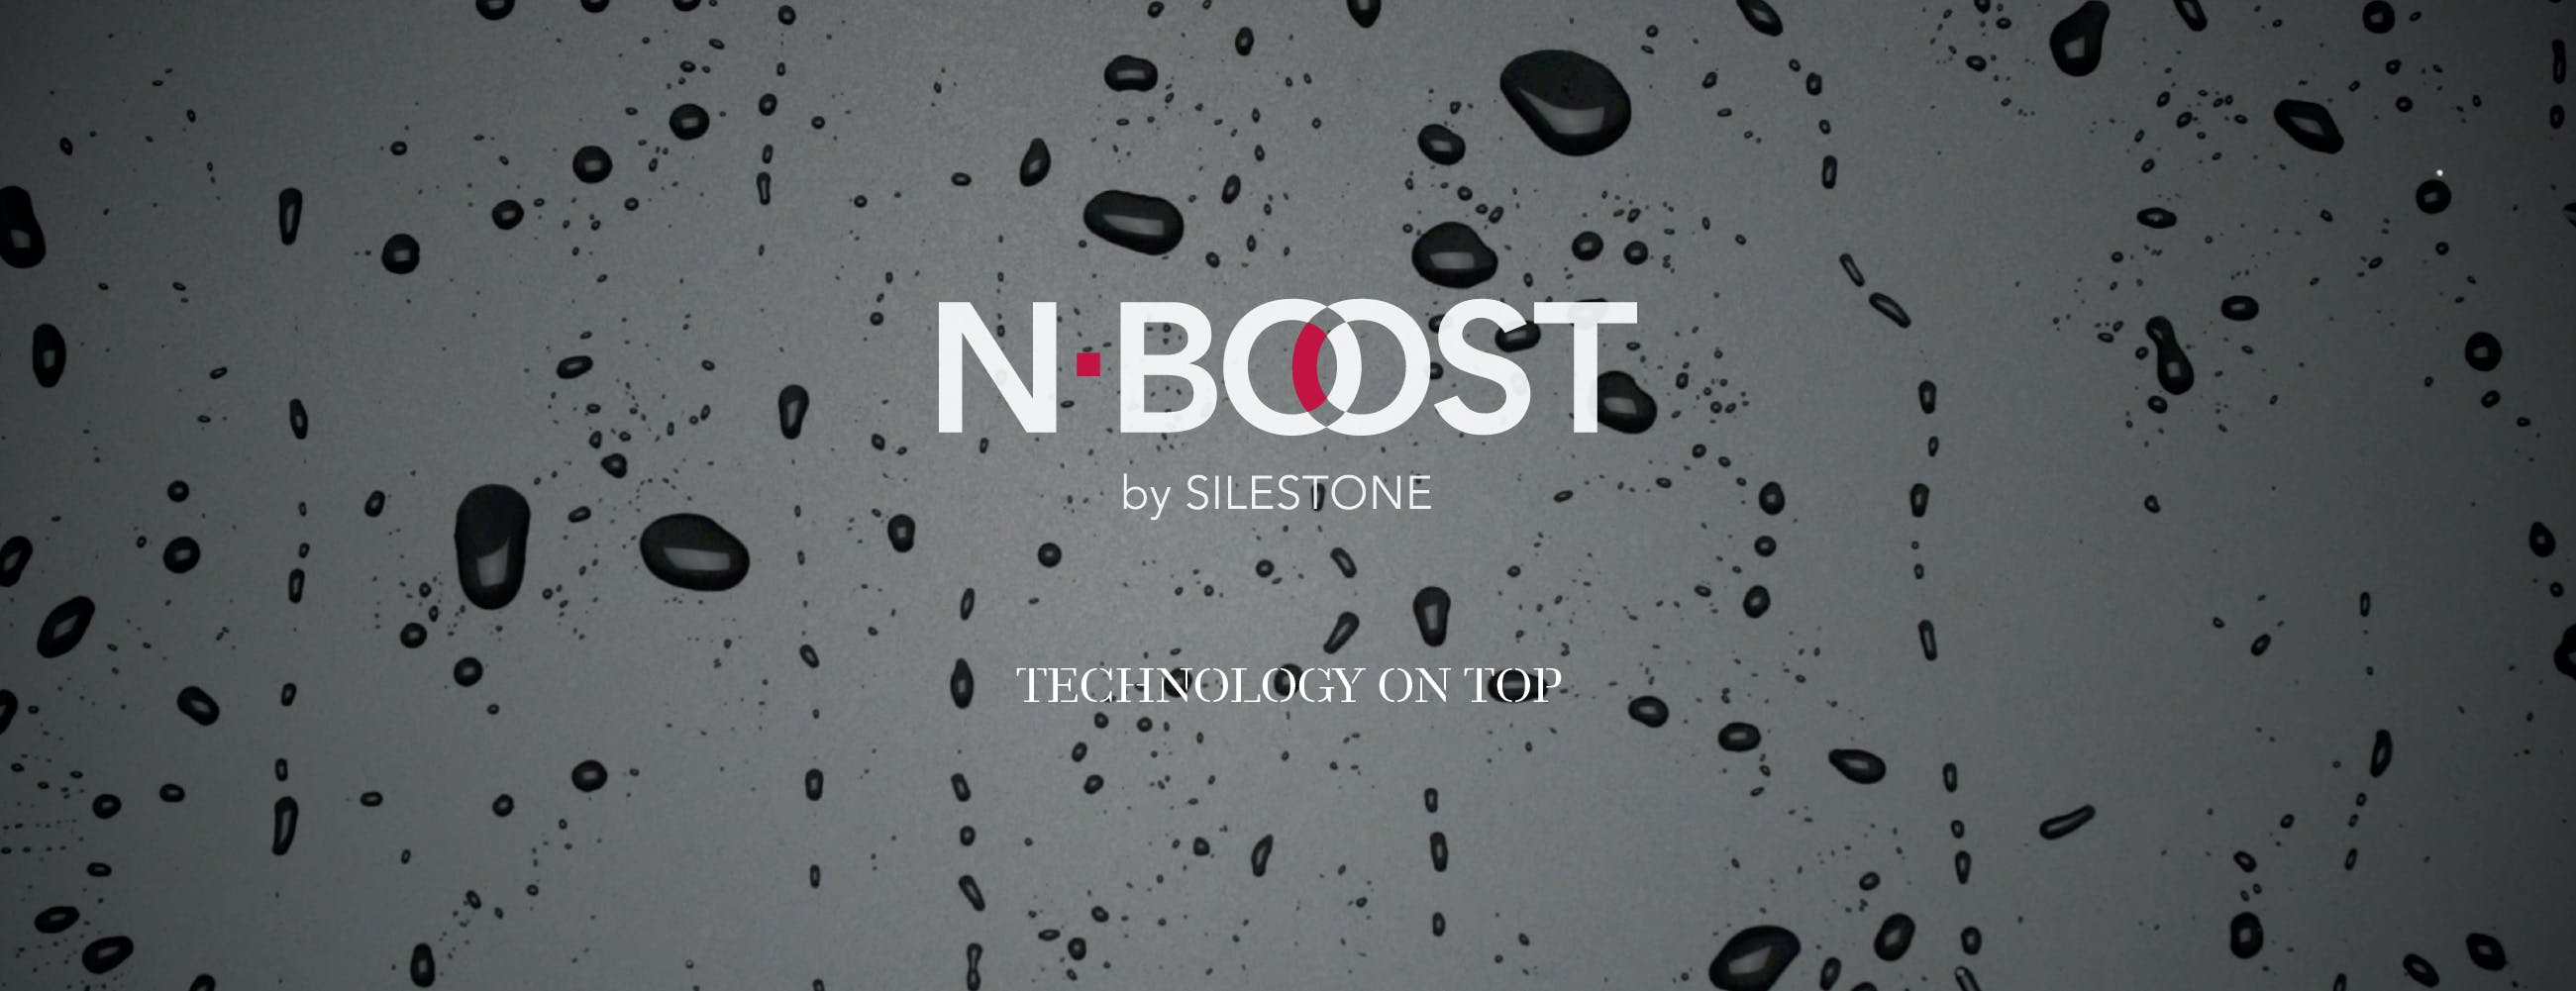 beautiful nboost silestone with prix silestone m2. Black Bedroom Furniture Sets. Home Design Ideas